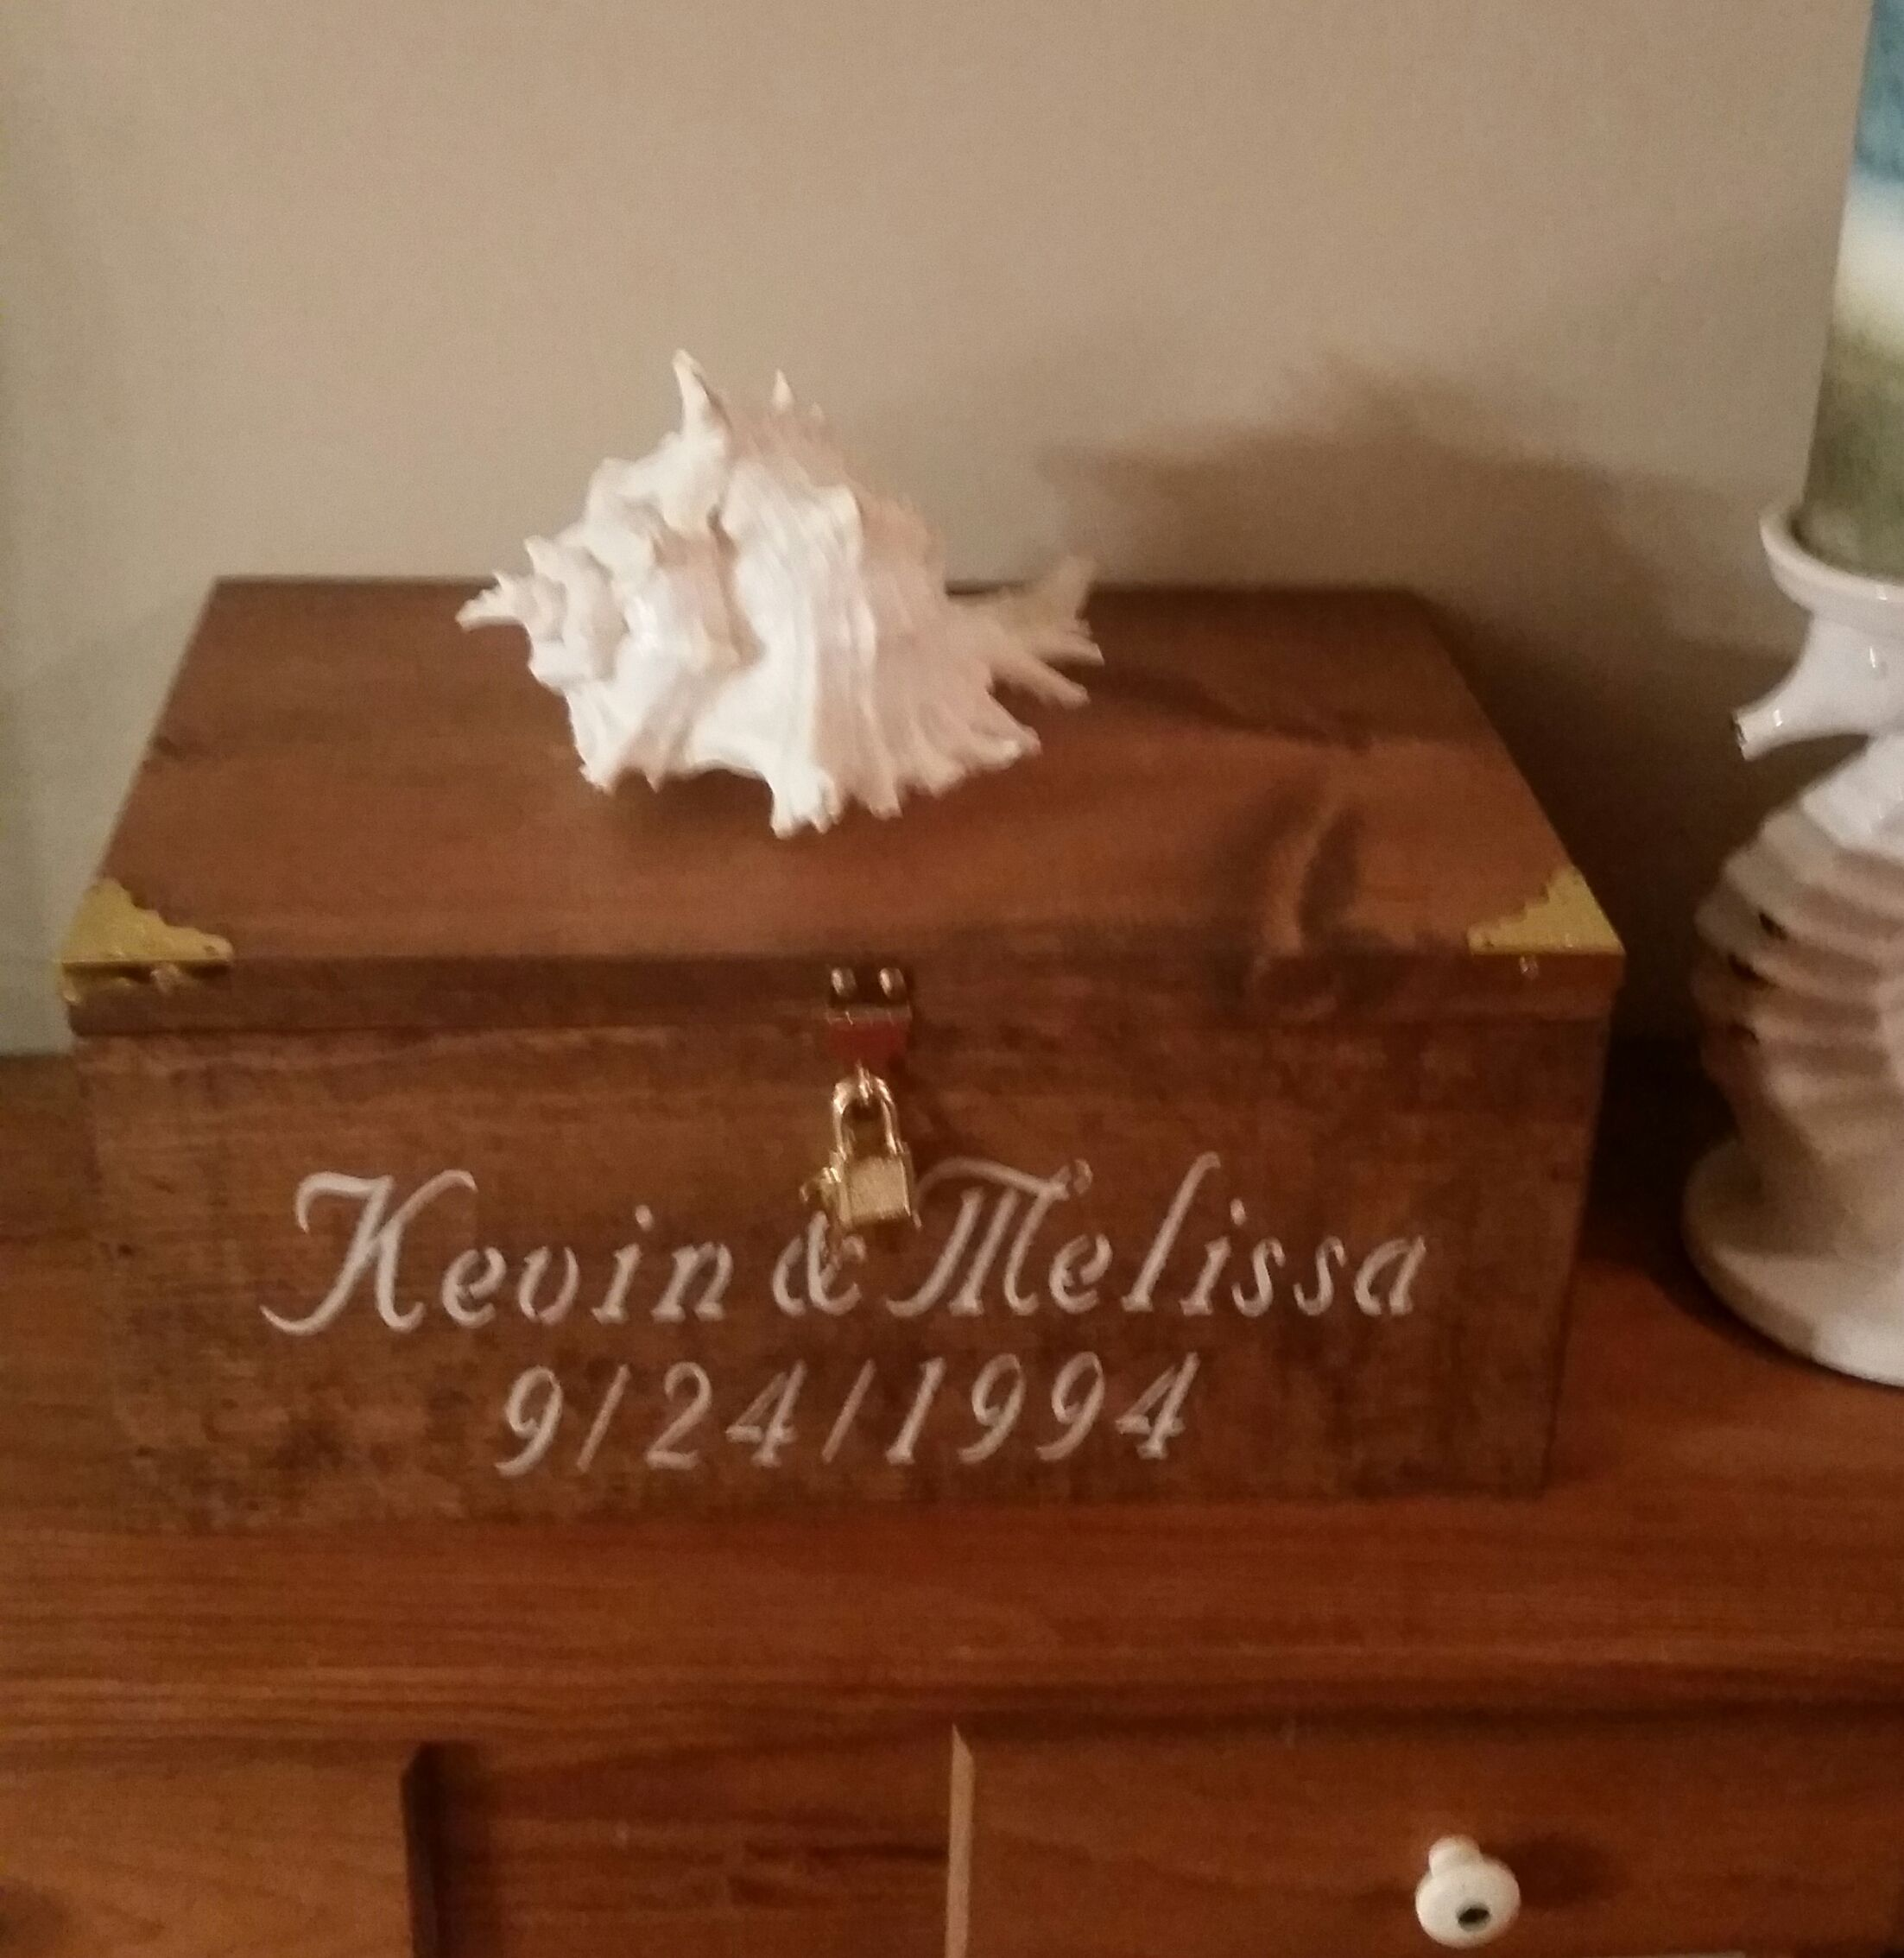 Buy a Hand Made Personalized Wedding Card Box Medium Sized, made to ...